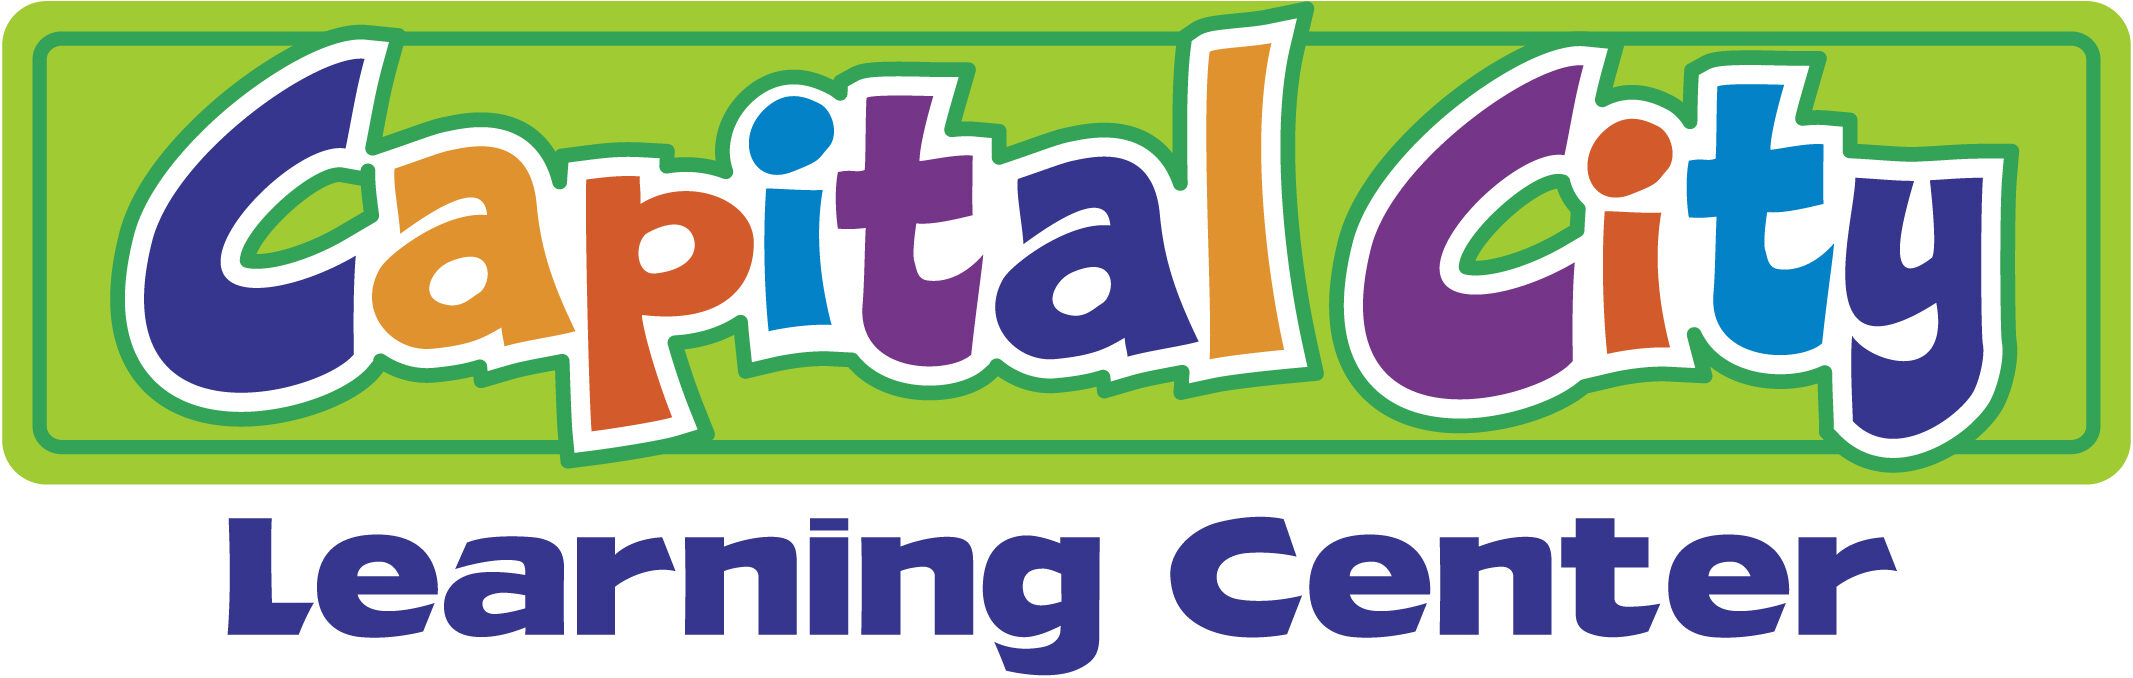 Capital City Learning Center